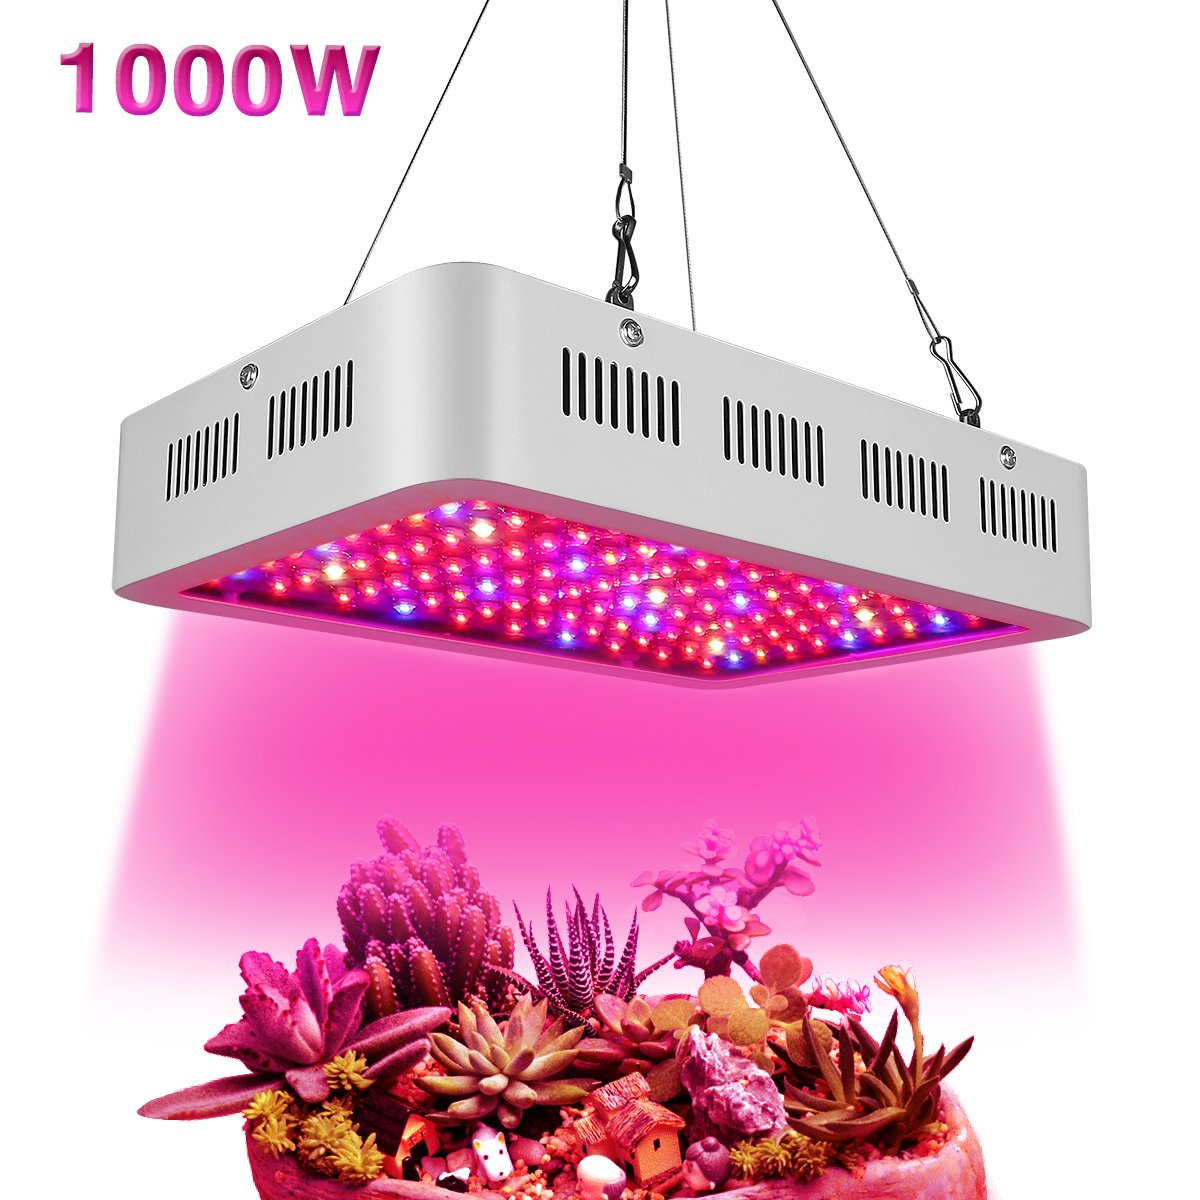 Led Grow Light 1000W, Full Spectrum Grow Lights Double Chips Growing Lamps with UV & IR with Protective Sunglasses for Indoor Plants Greenhouse Hydroponic Veg and Flower by Wisful